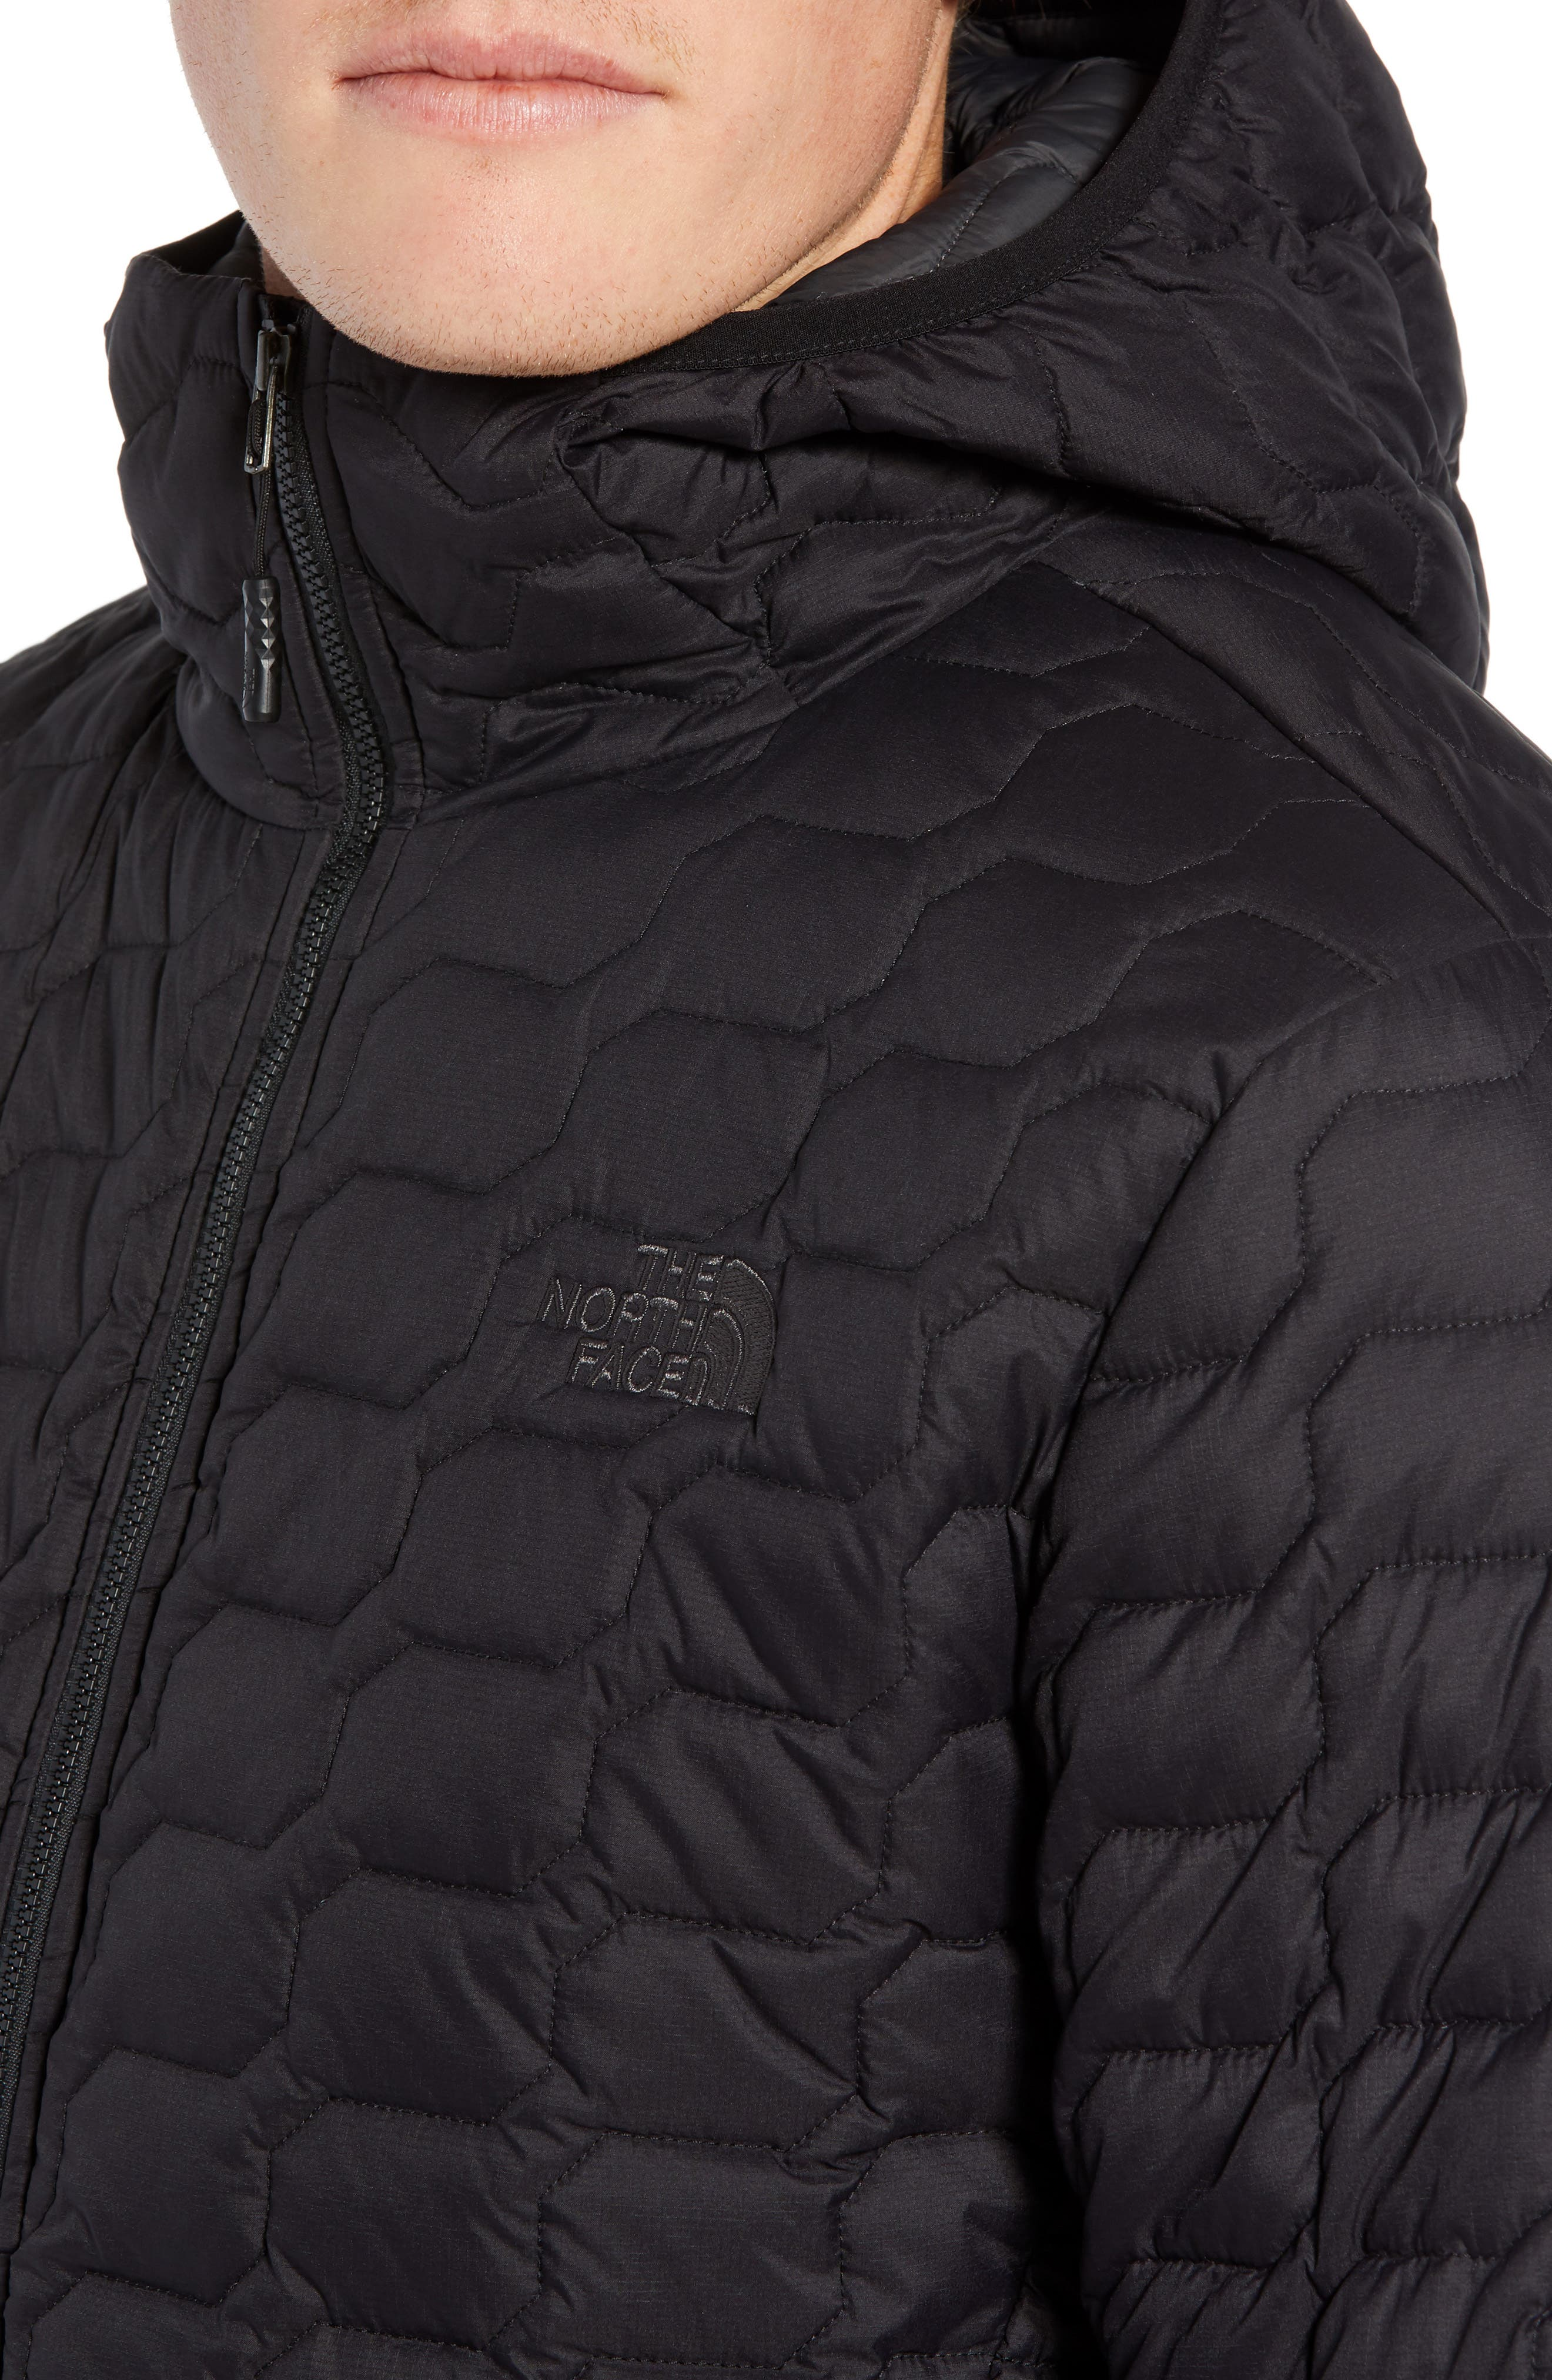 THE NORTH FACE, ThermoBall<sup>™</sup> Zip Hoodie, Alternate thumbnail 5, color, 001